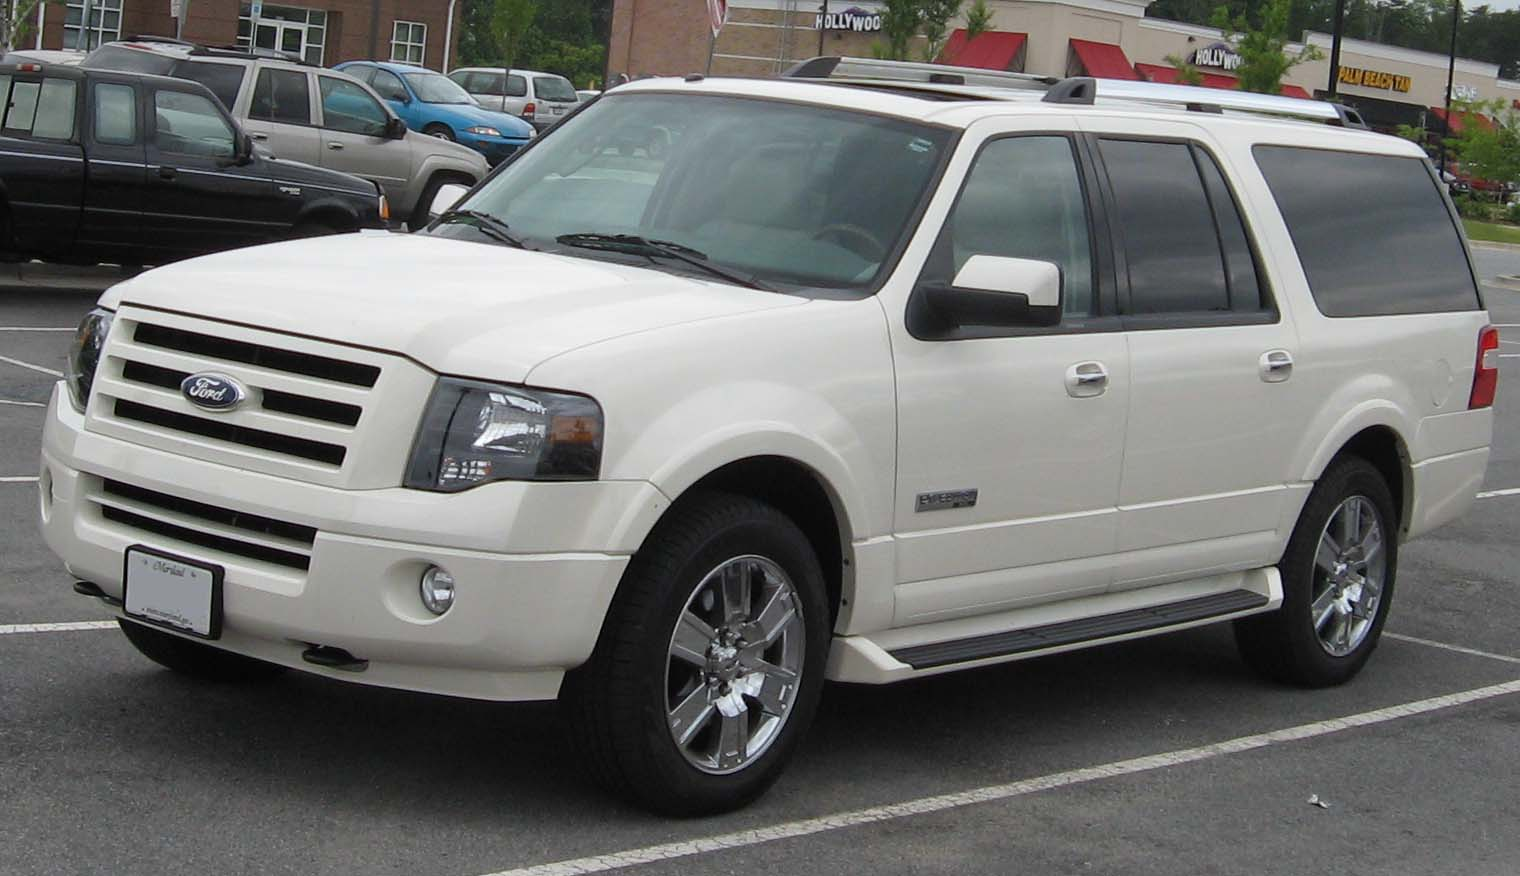 Ford Expedition white #1